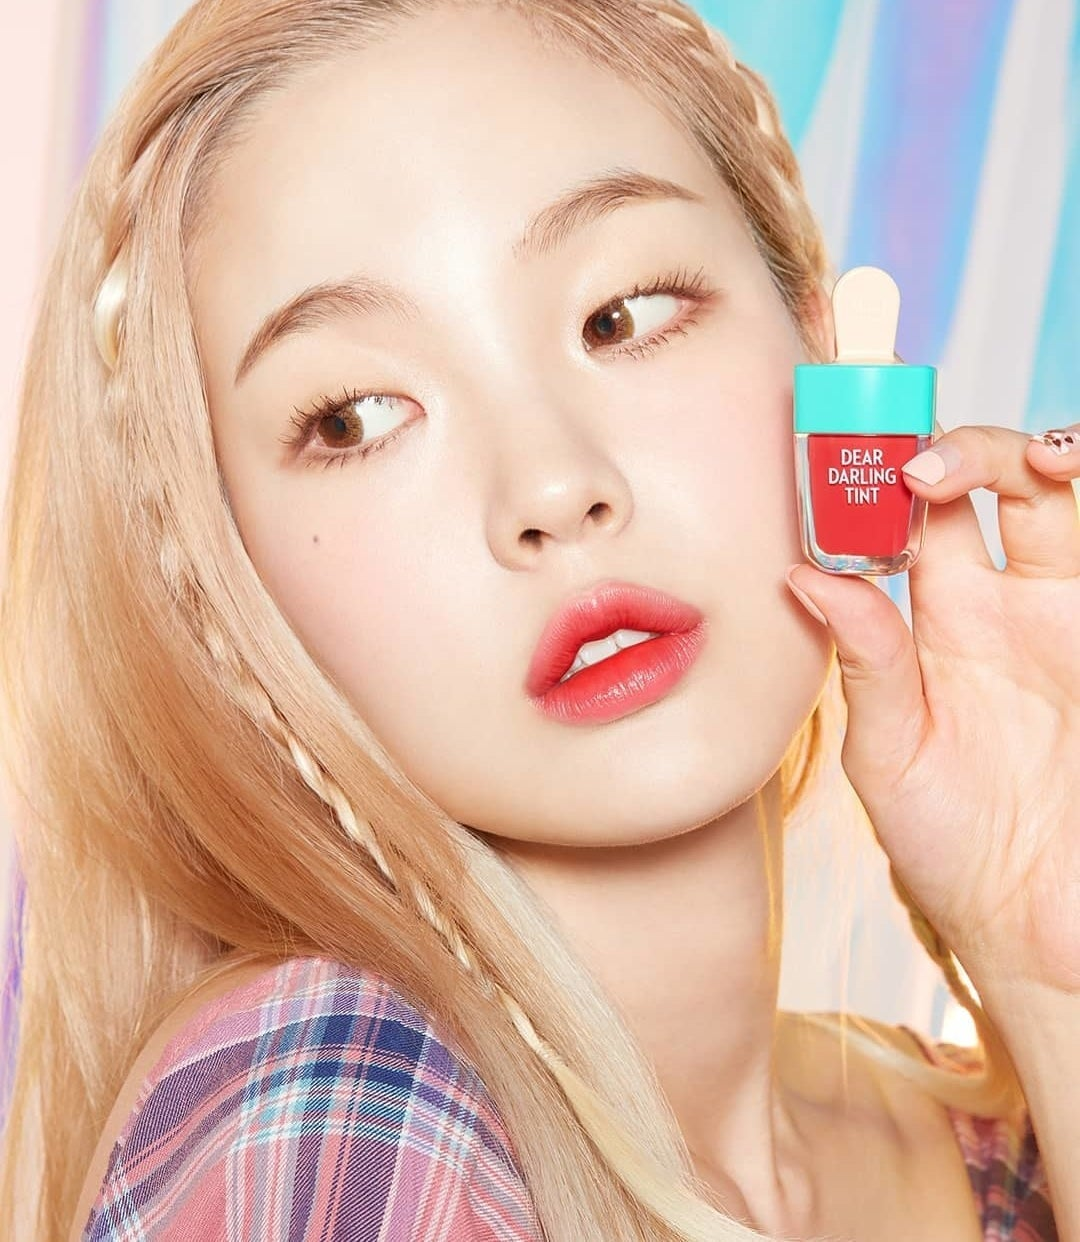 A person holds a lip tint that looks like a popsicle with a tint on their lips